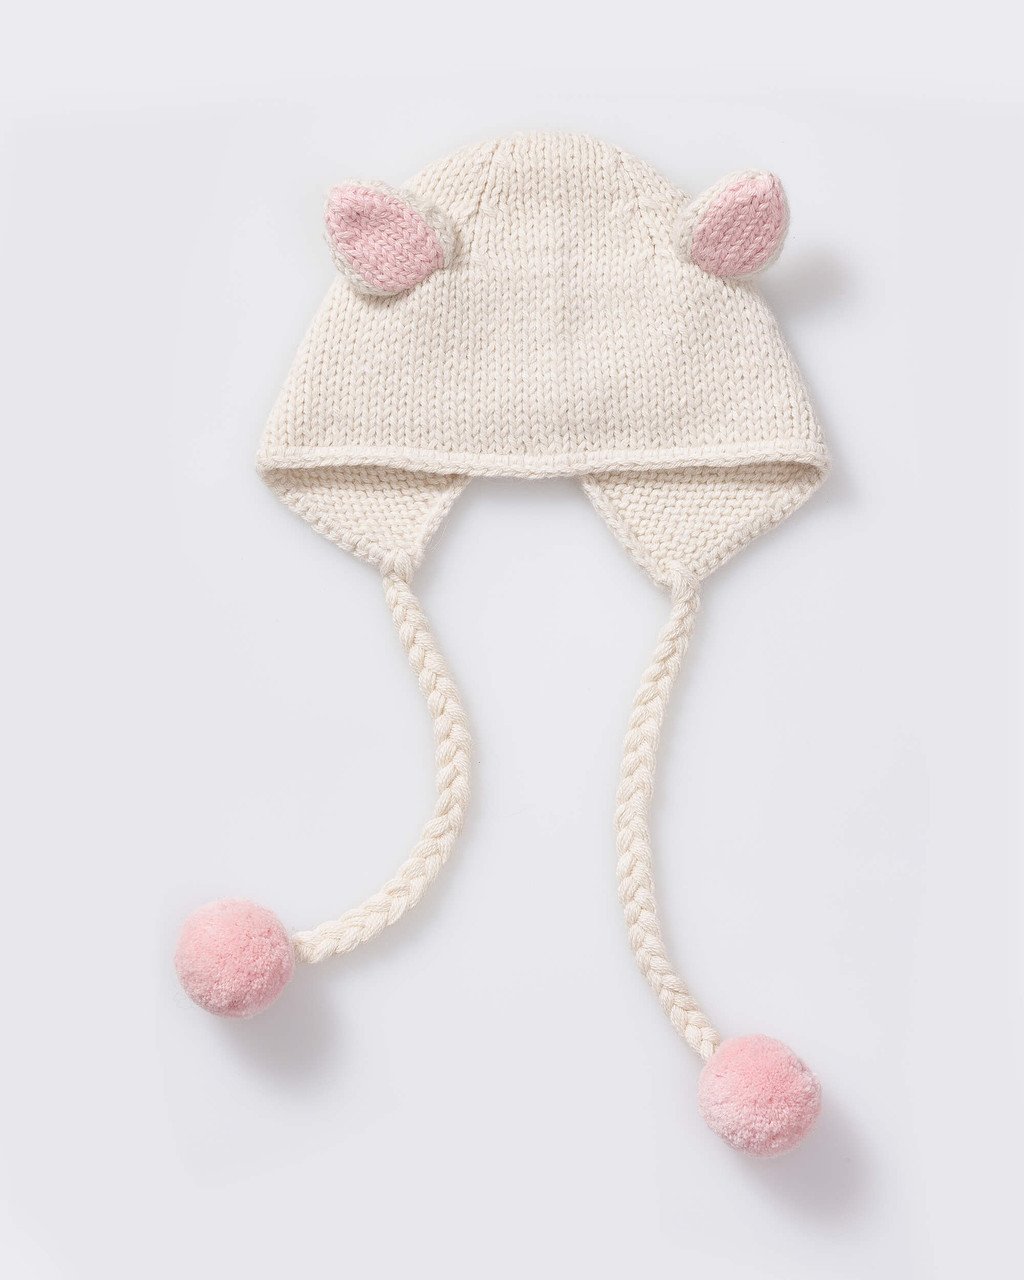 Alicia Adams Alpaca Bunny Hat, alpaca baby clothes, baby alpaca hat, alpaca clothing kids, alpaca winter hats, ivory and pink powder alpaca baby hat